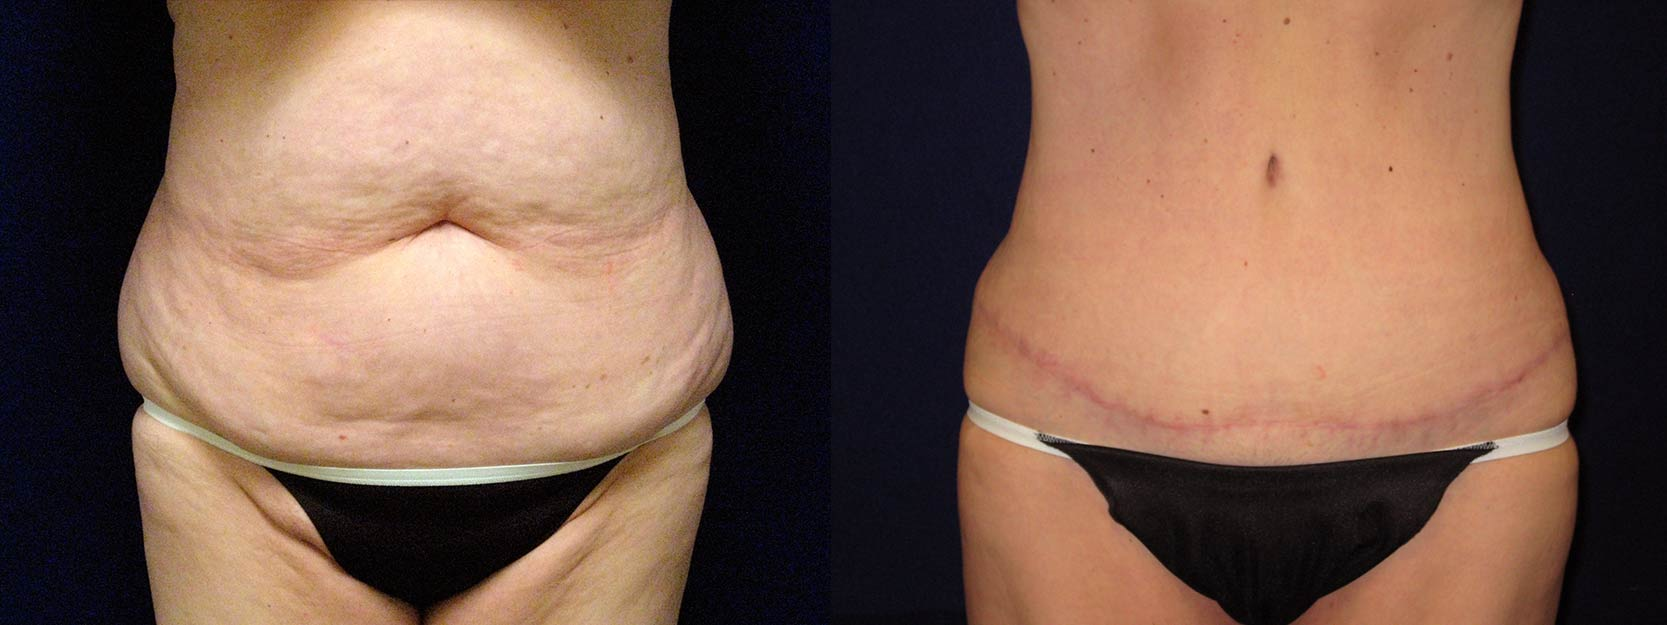 Frontal View - Abdominoplasty